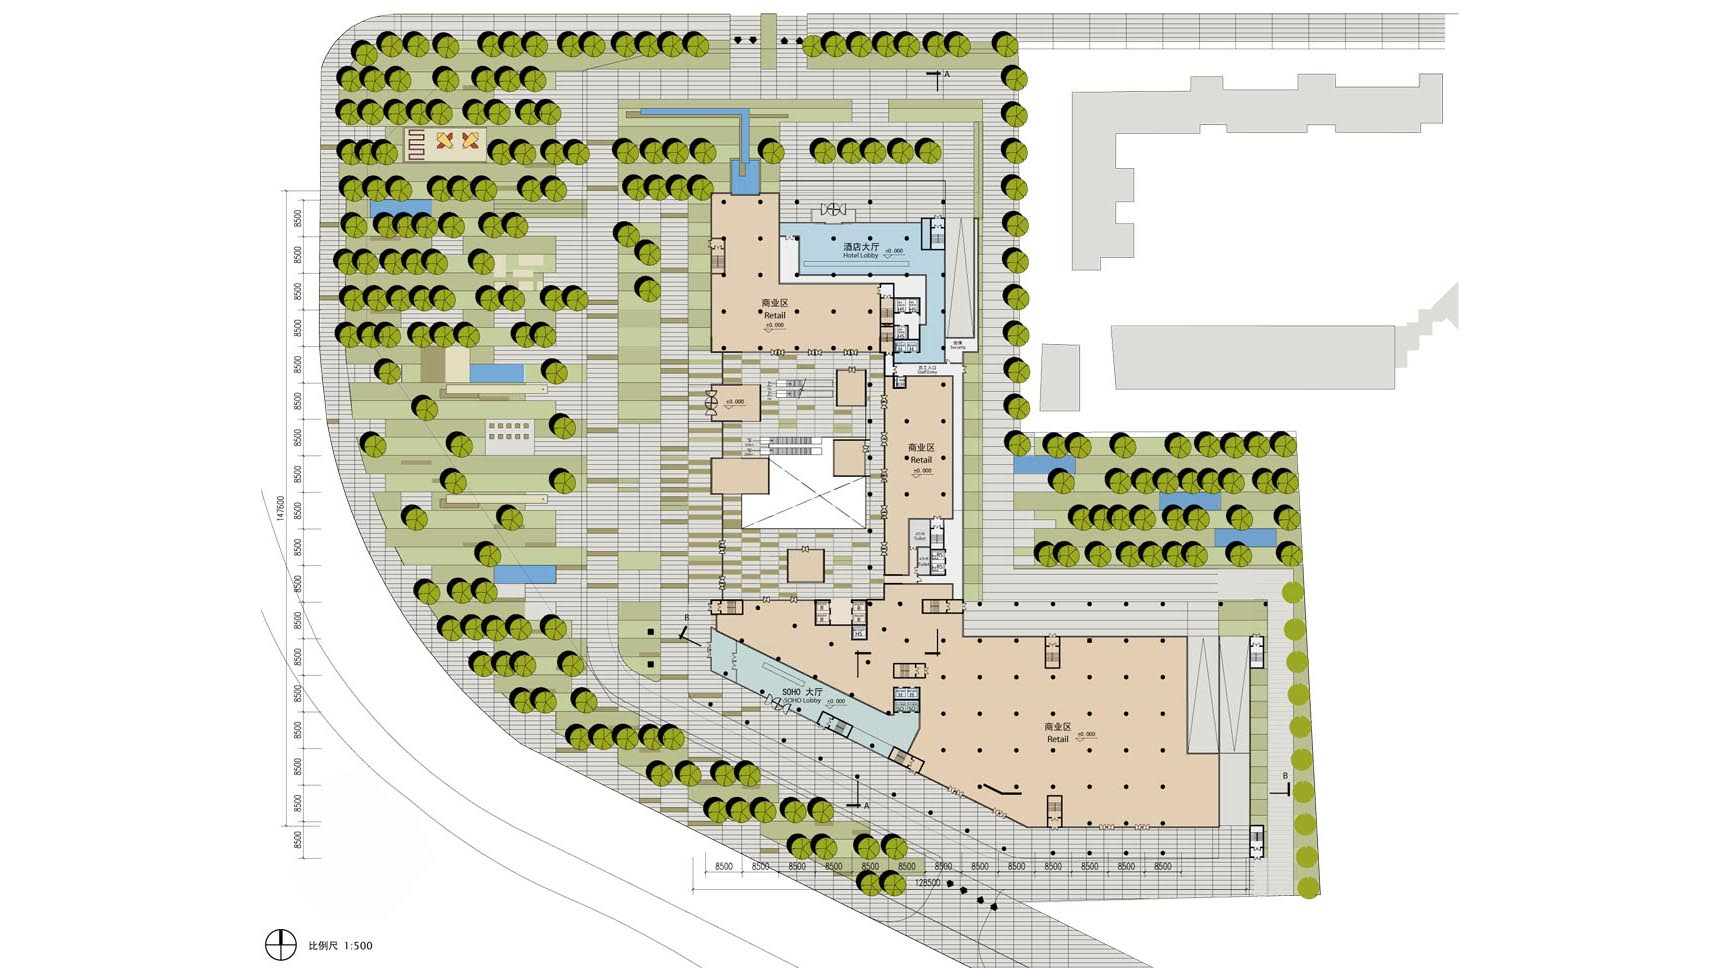 Southwest Hotel - Site Plan.jpg